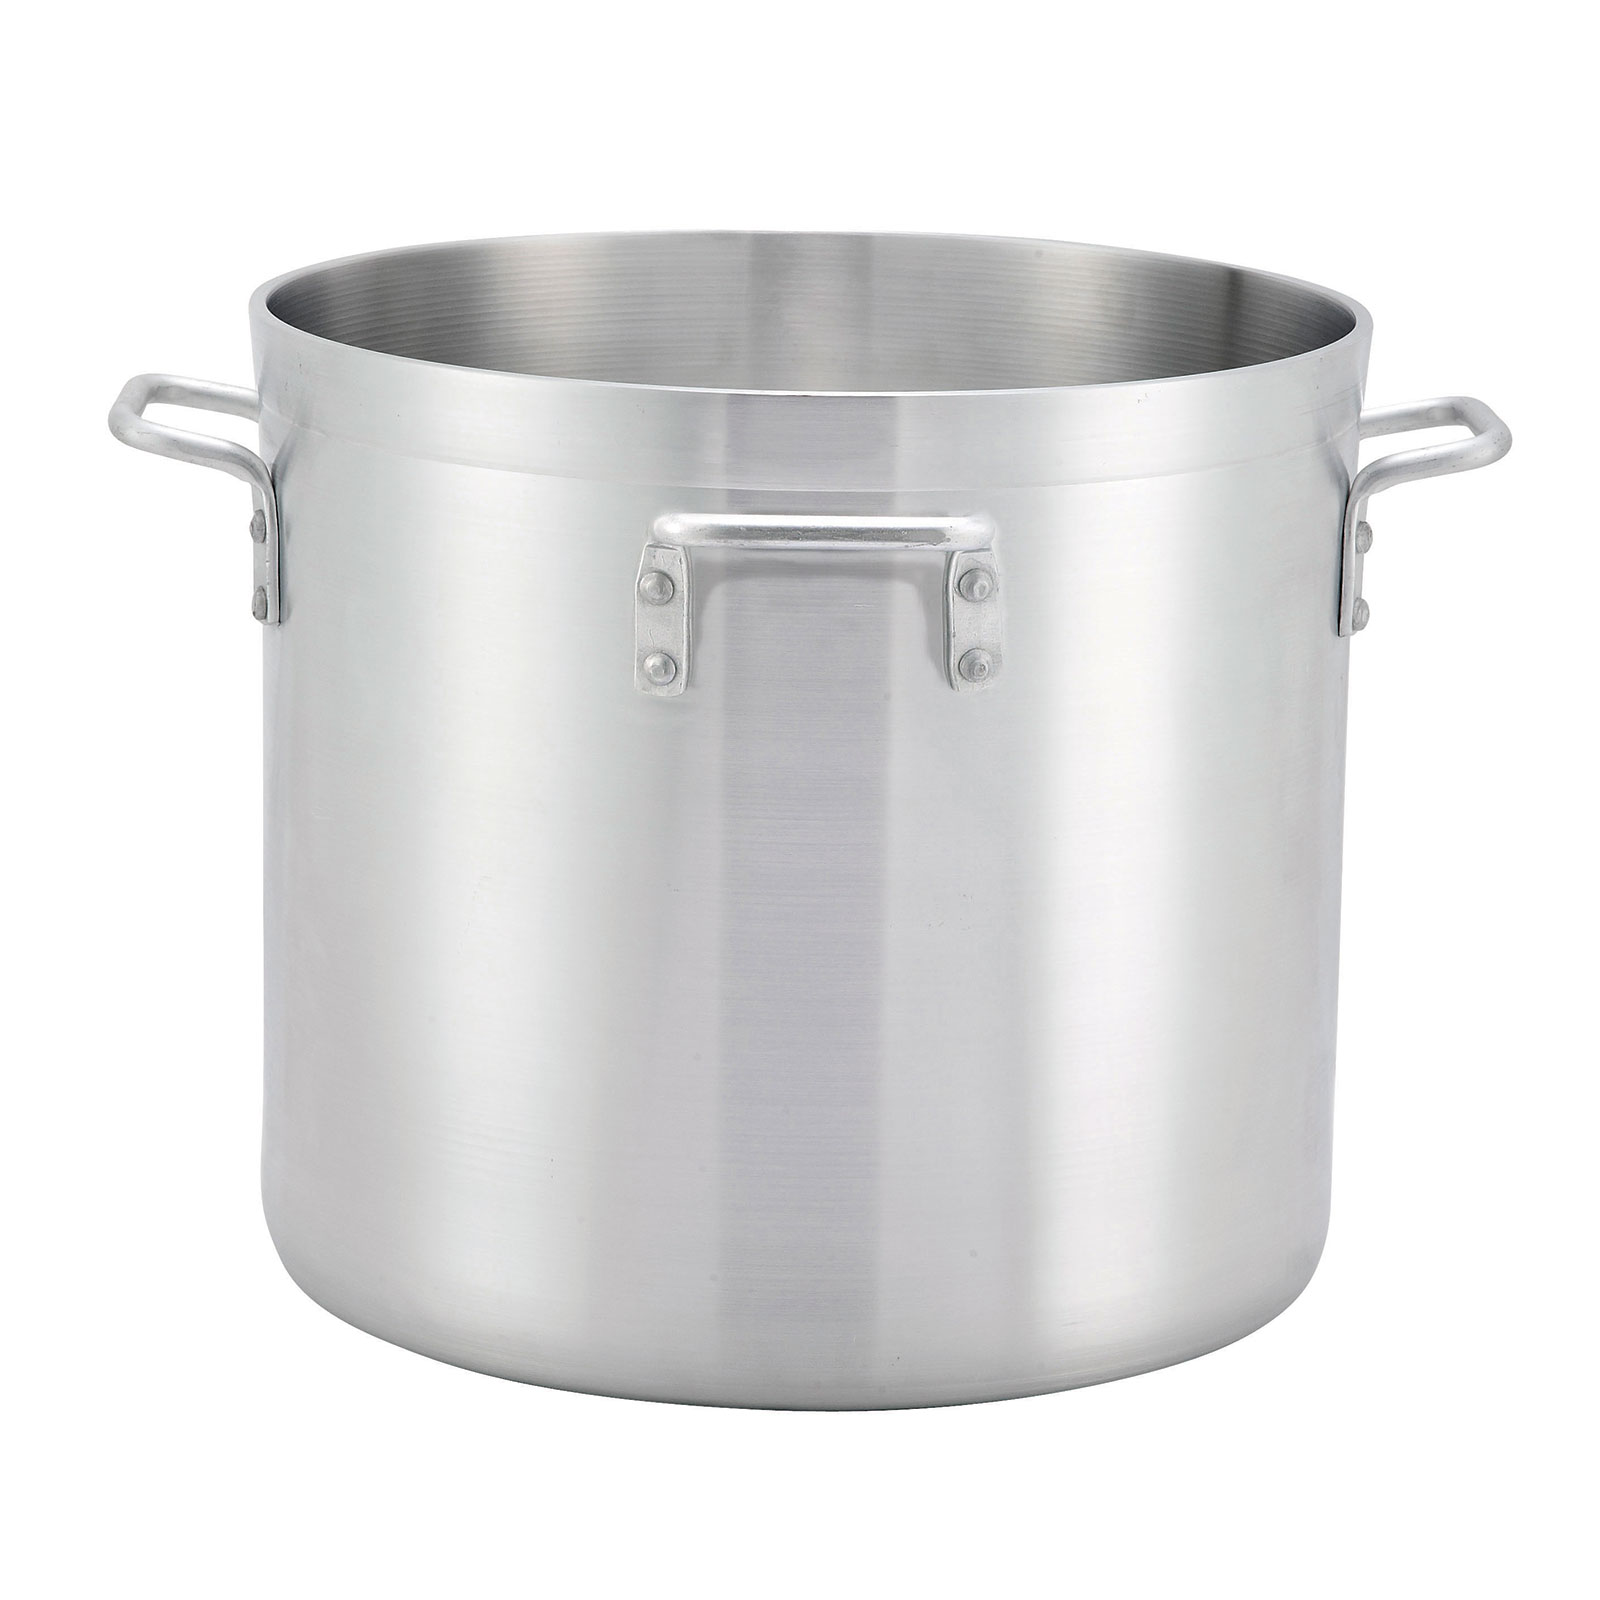 Winco ALHP-120H stock pot